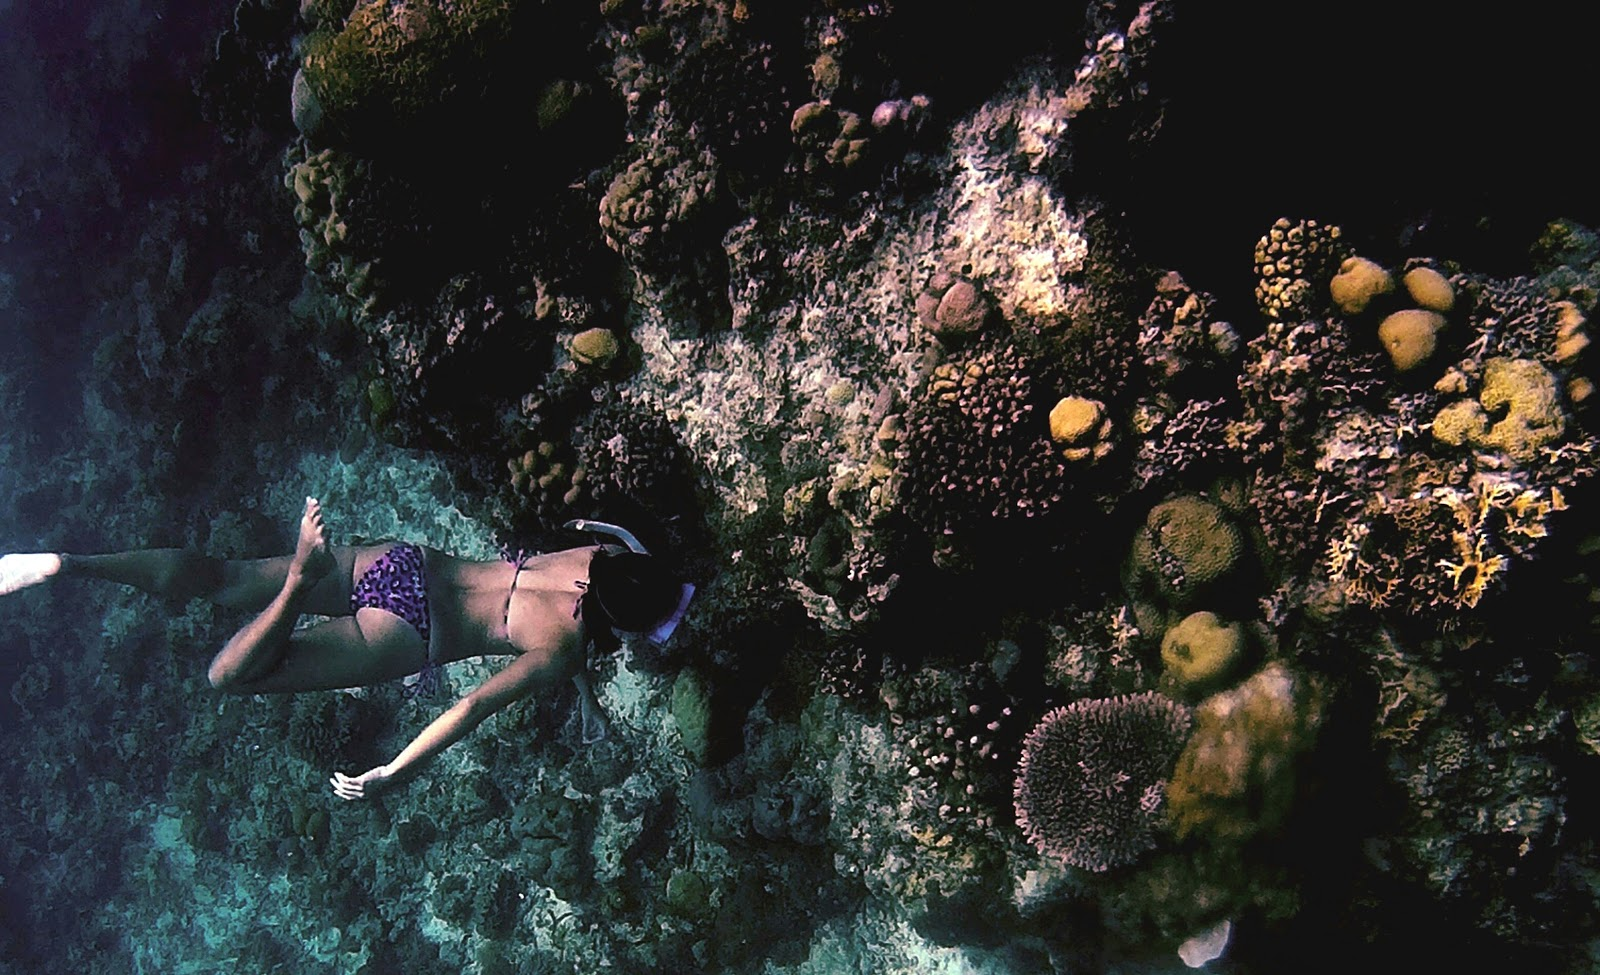 Snorkeling in Fajardo is one of the fun things to do in Puerto Rico